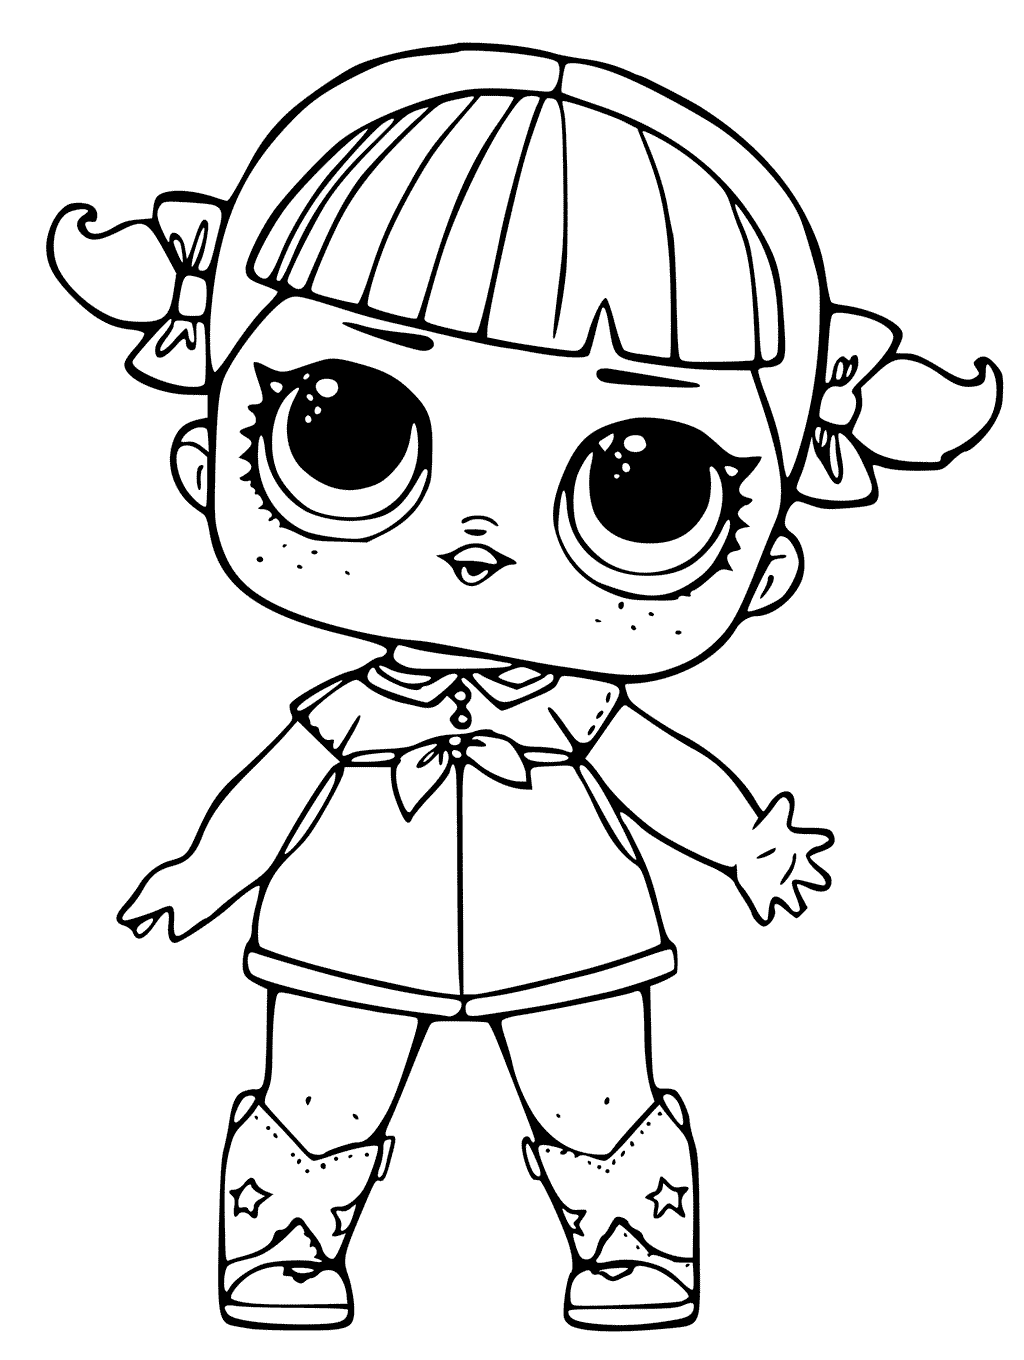 LOL Surprise Doll Coloring Pages Cherry lol dolls Lol